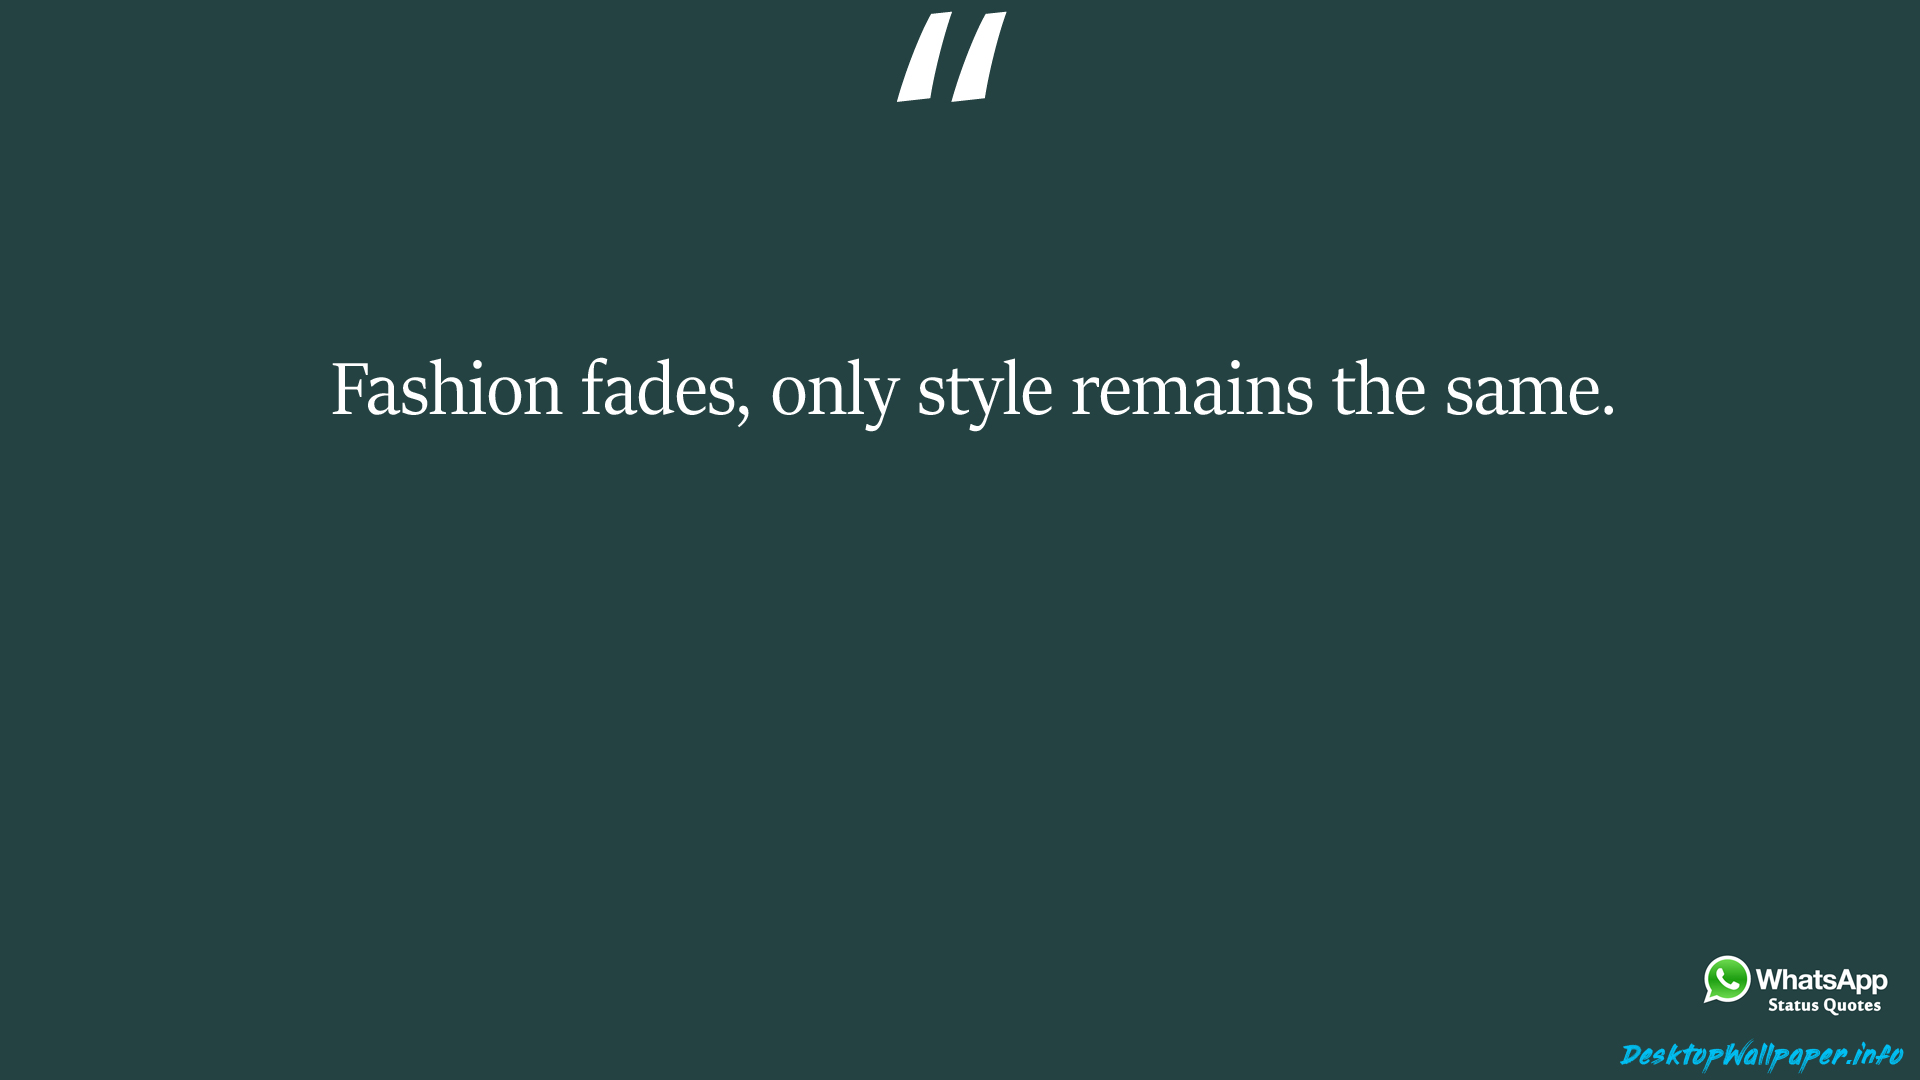 Fashion fades only style remains the same